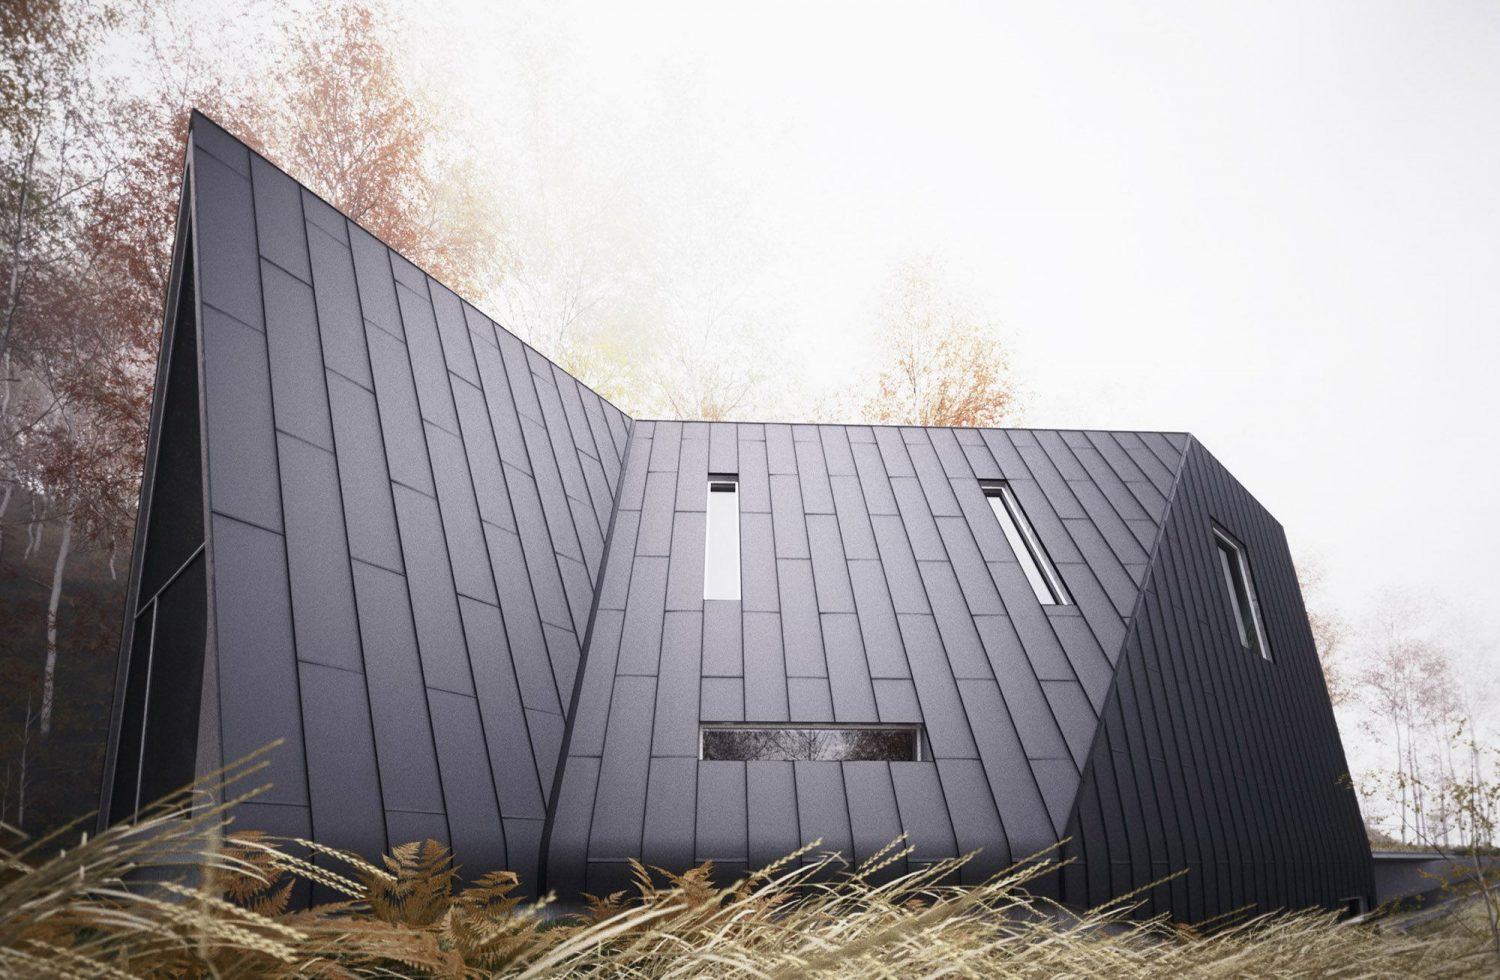 Allandale House | A-Frame House by William O'Brien Jr.